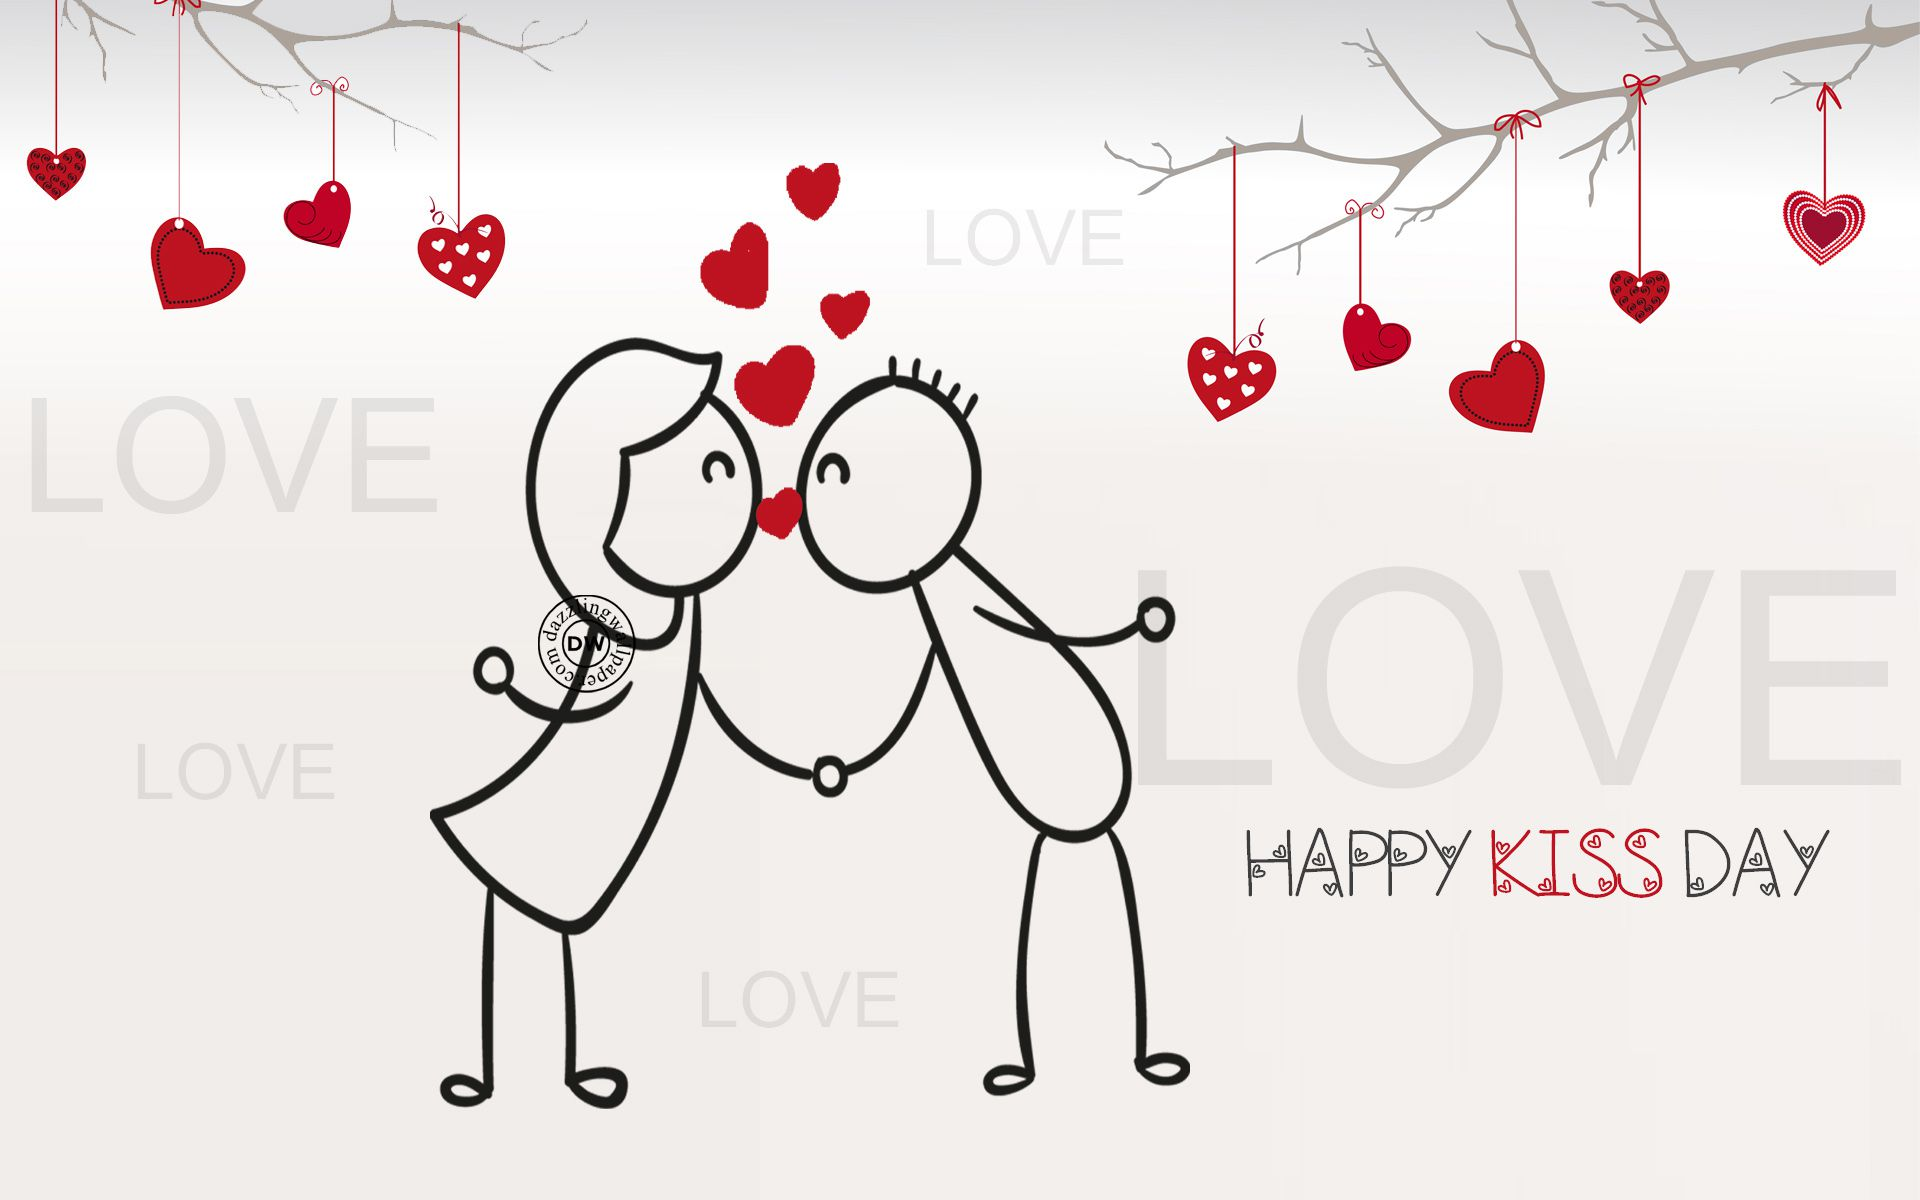 kiss day wallpapers for mobile wallpaper cave kiss day wallpapers for mobile